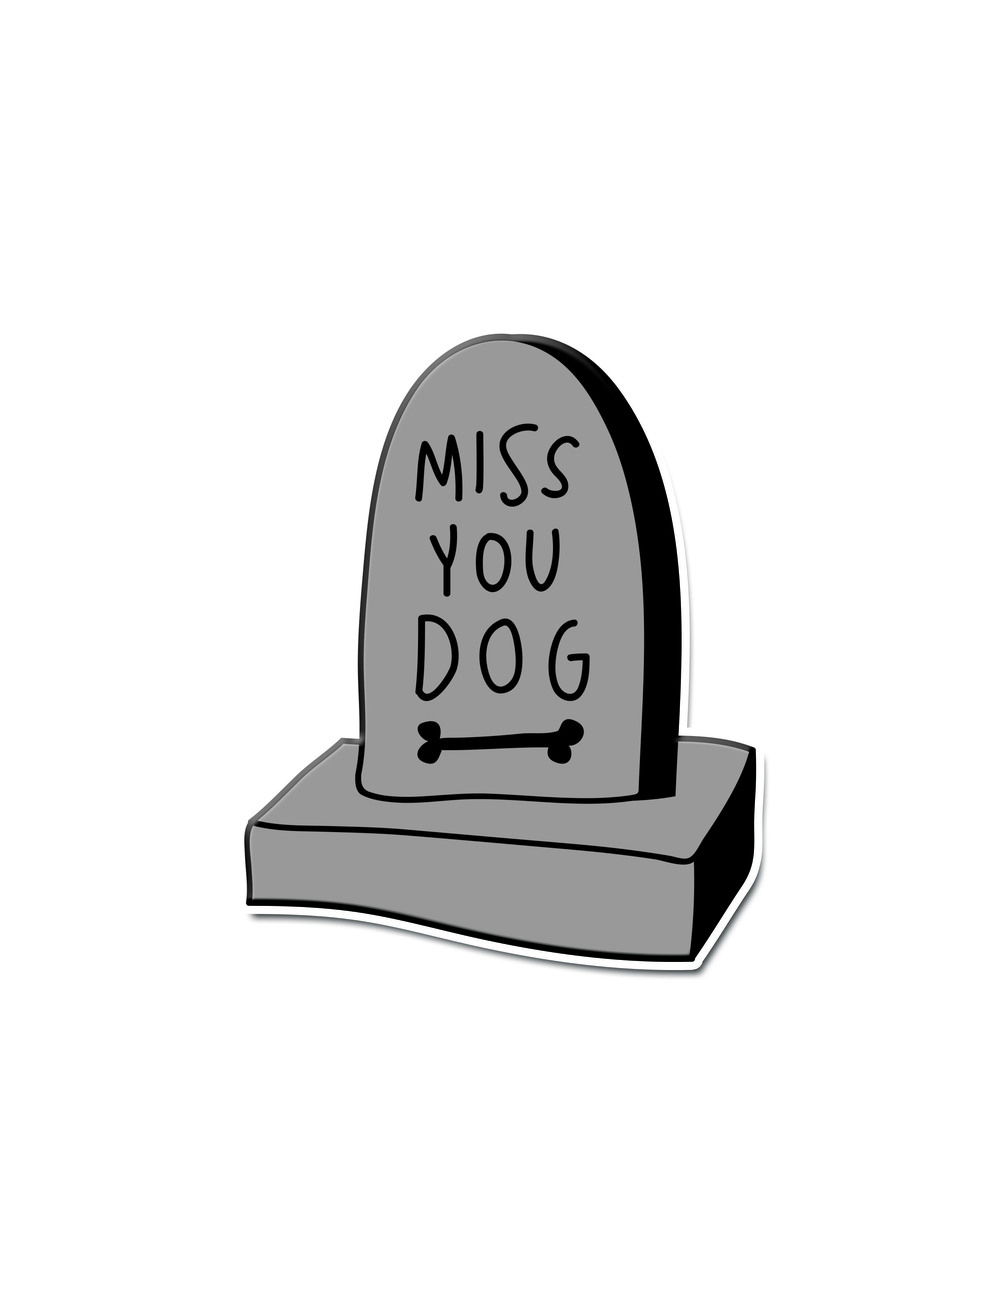 missudogsticker copy.jpg